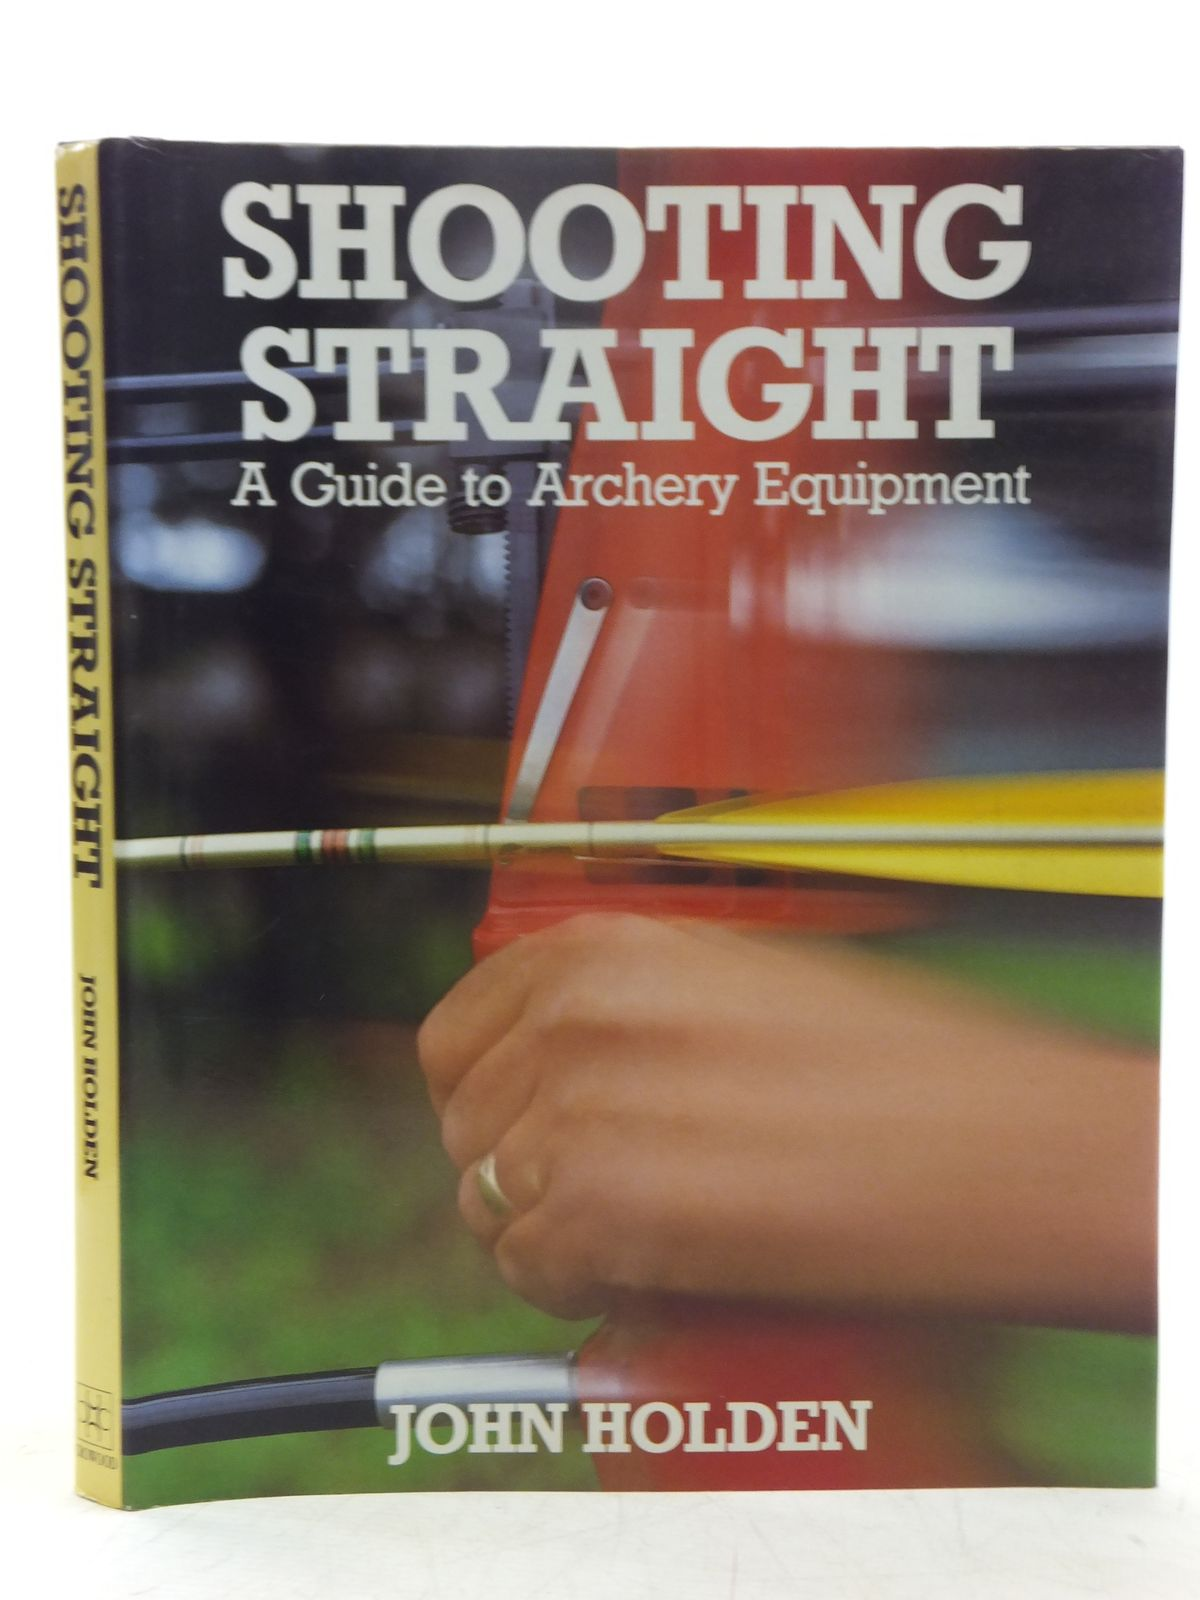 Photo of SHOOTING STRAIGHT A GUIDE TO ARCHERY EQUIPMENT written by Holden, John published by The Crowood Press (STOCK CODE: 2118736)  for sale by Stella & Rose's Books